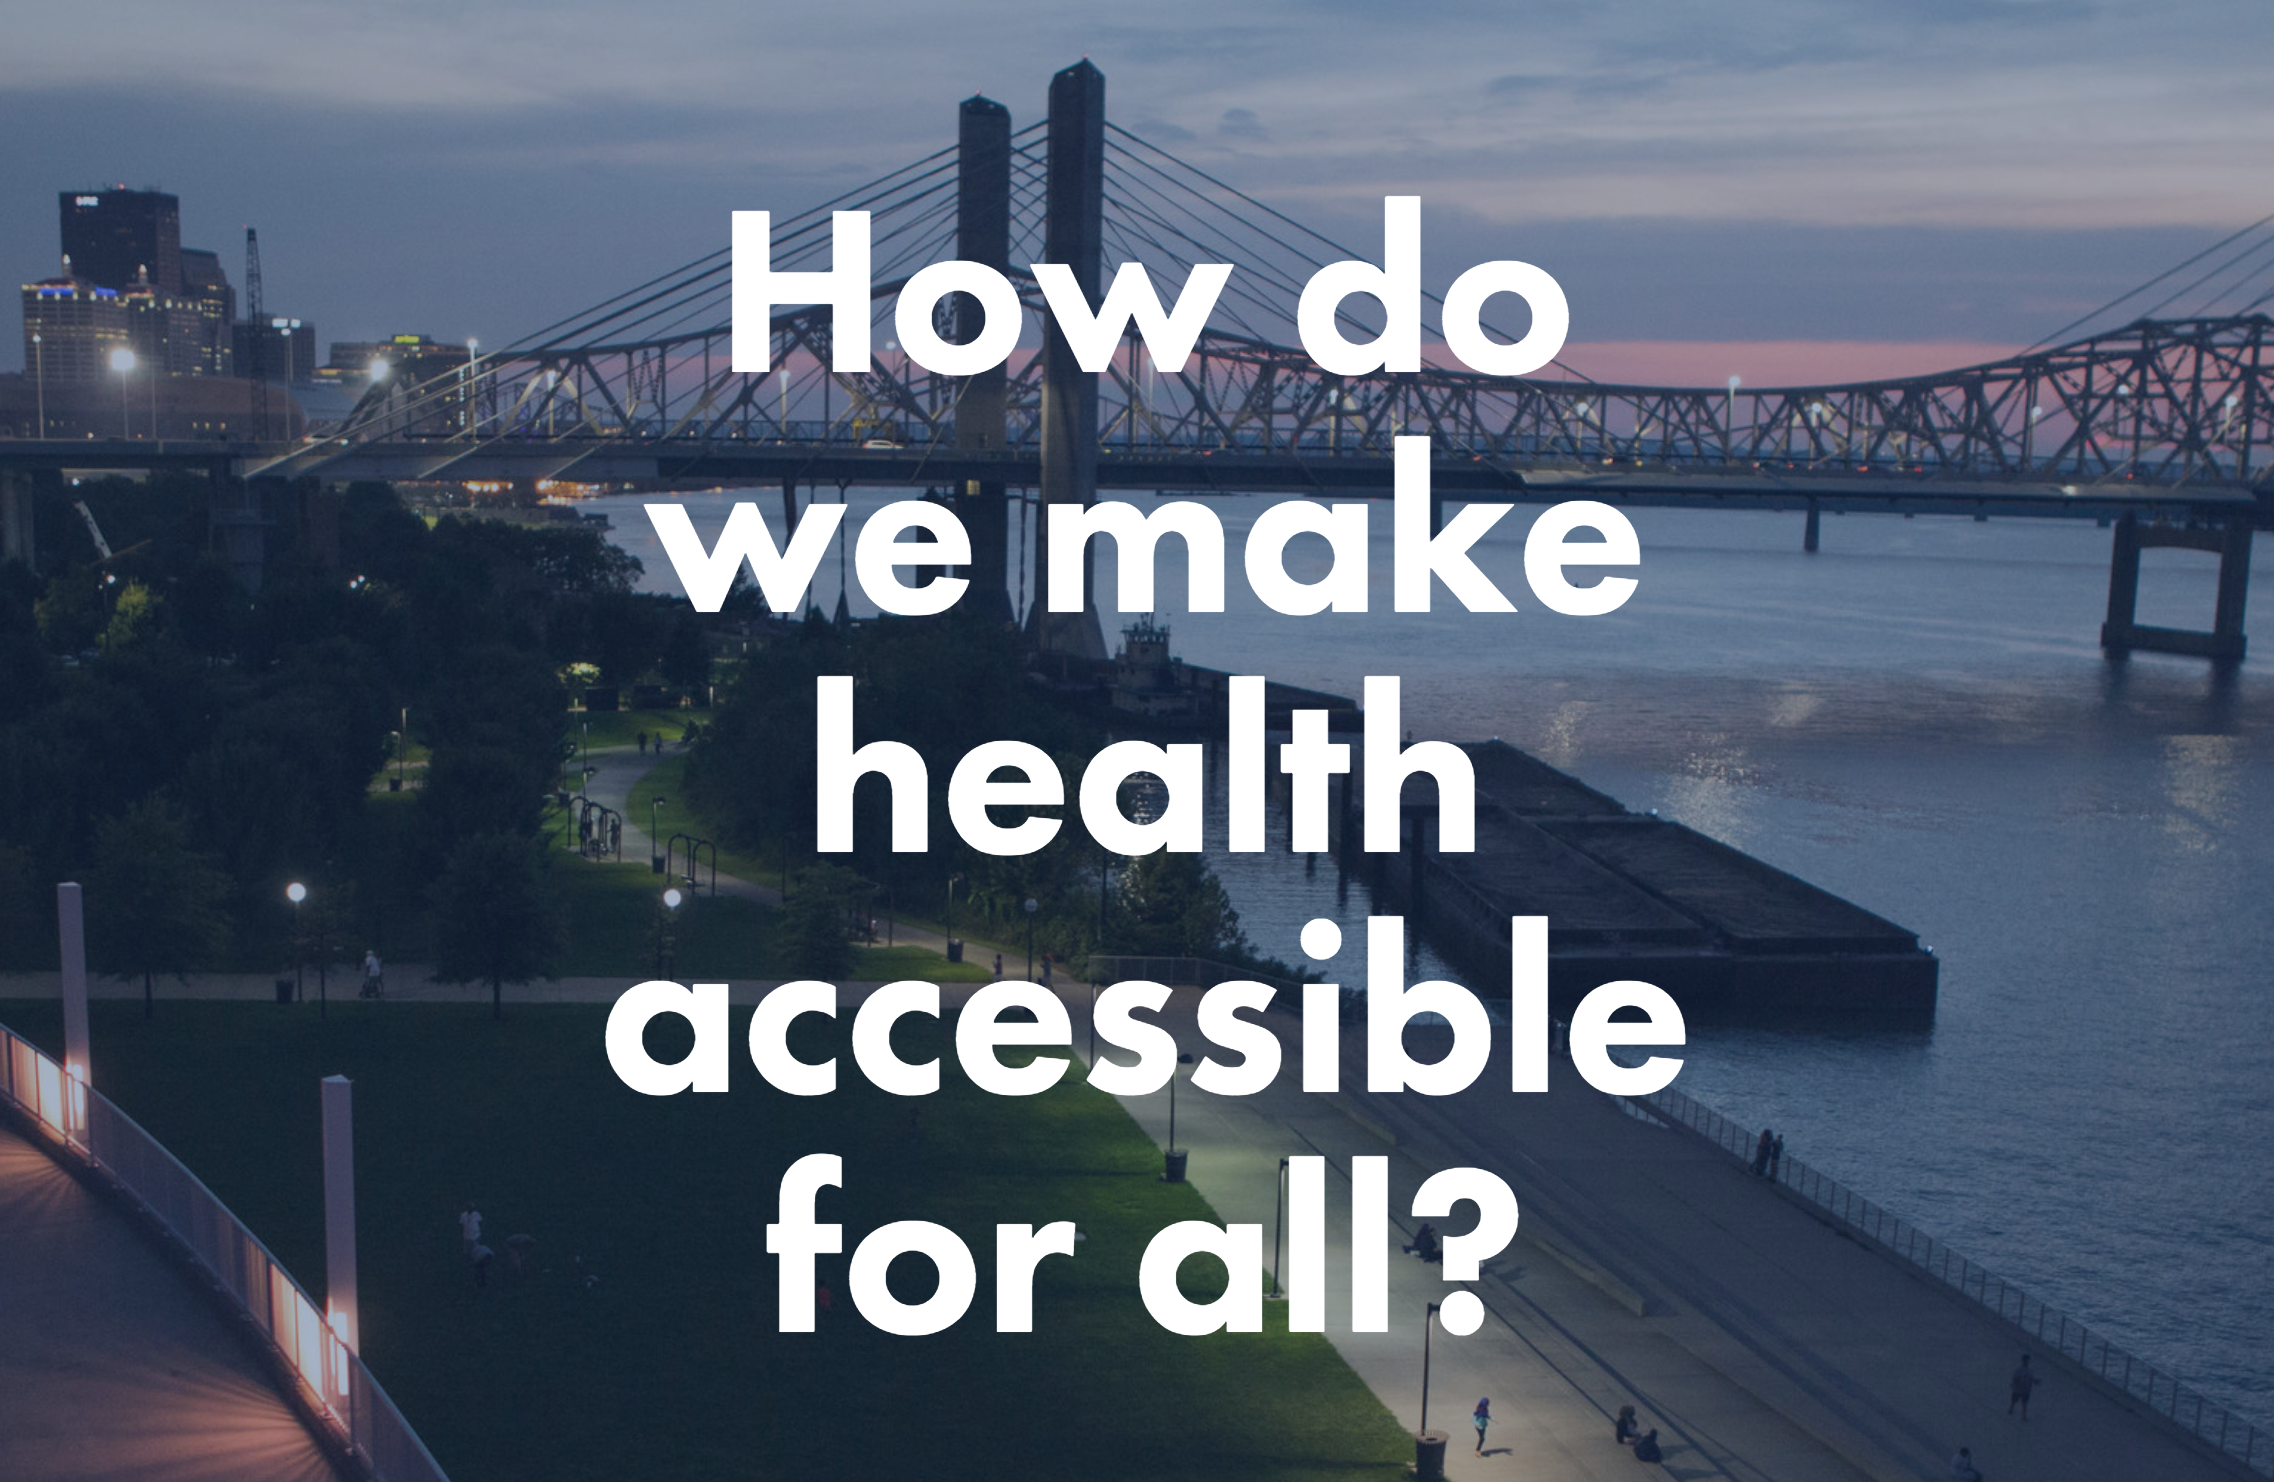 CLICK HERE TO VISIT LOUISVILLE'S NEW CULTURE OF HEALTH ONLINE HUB